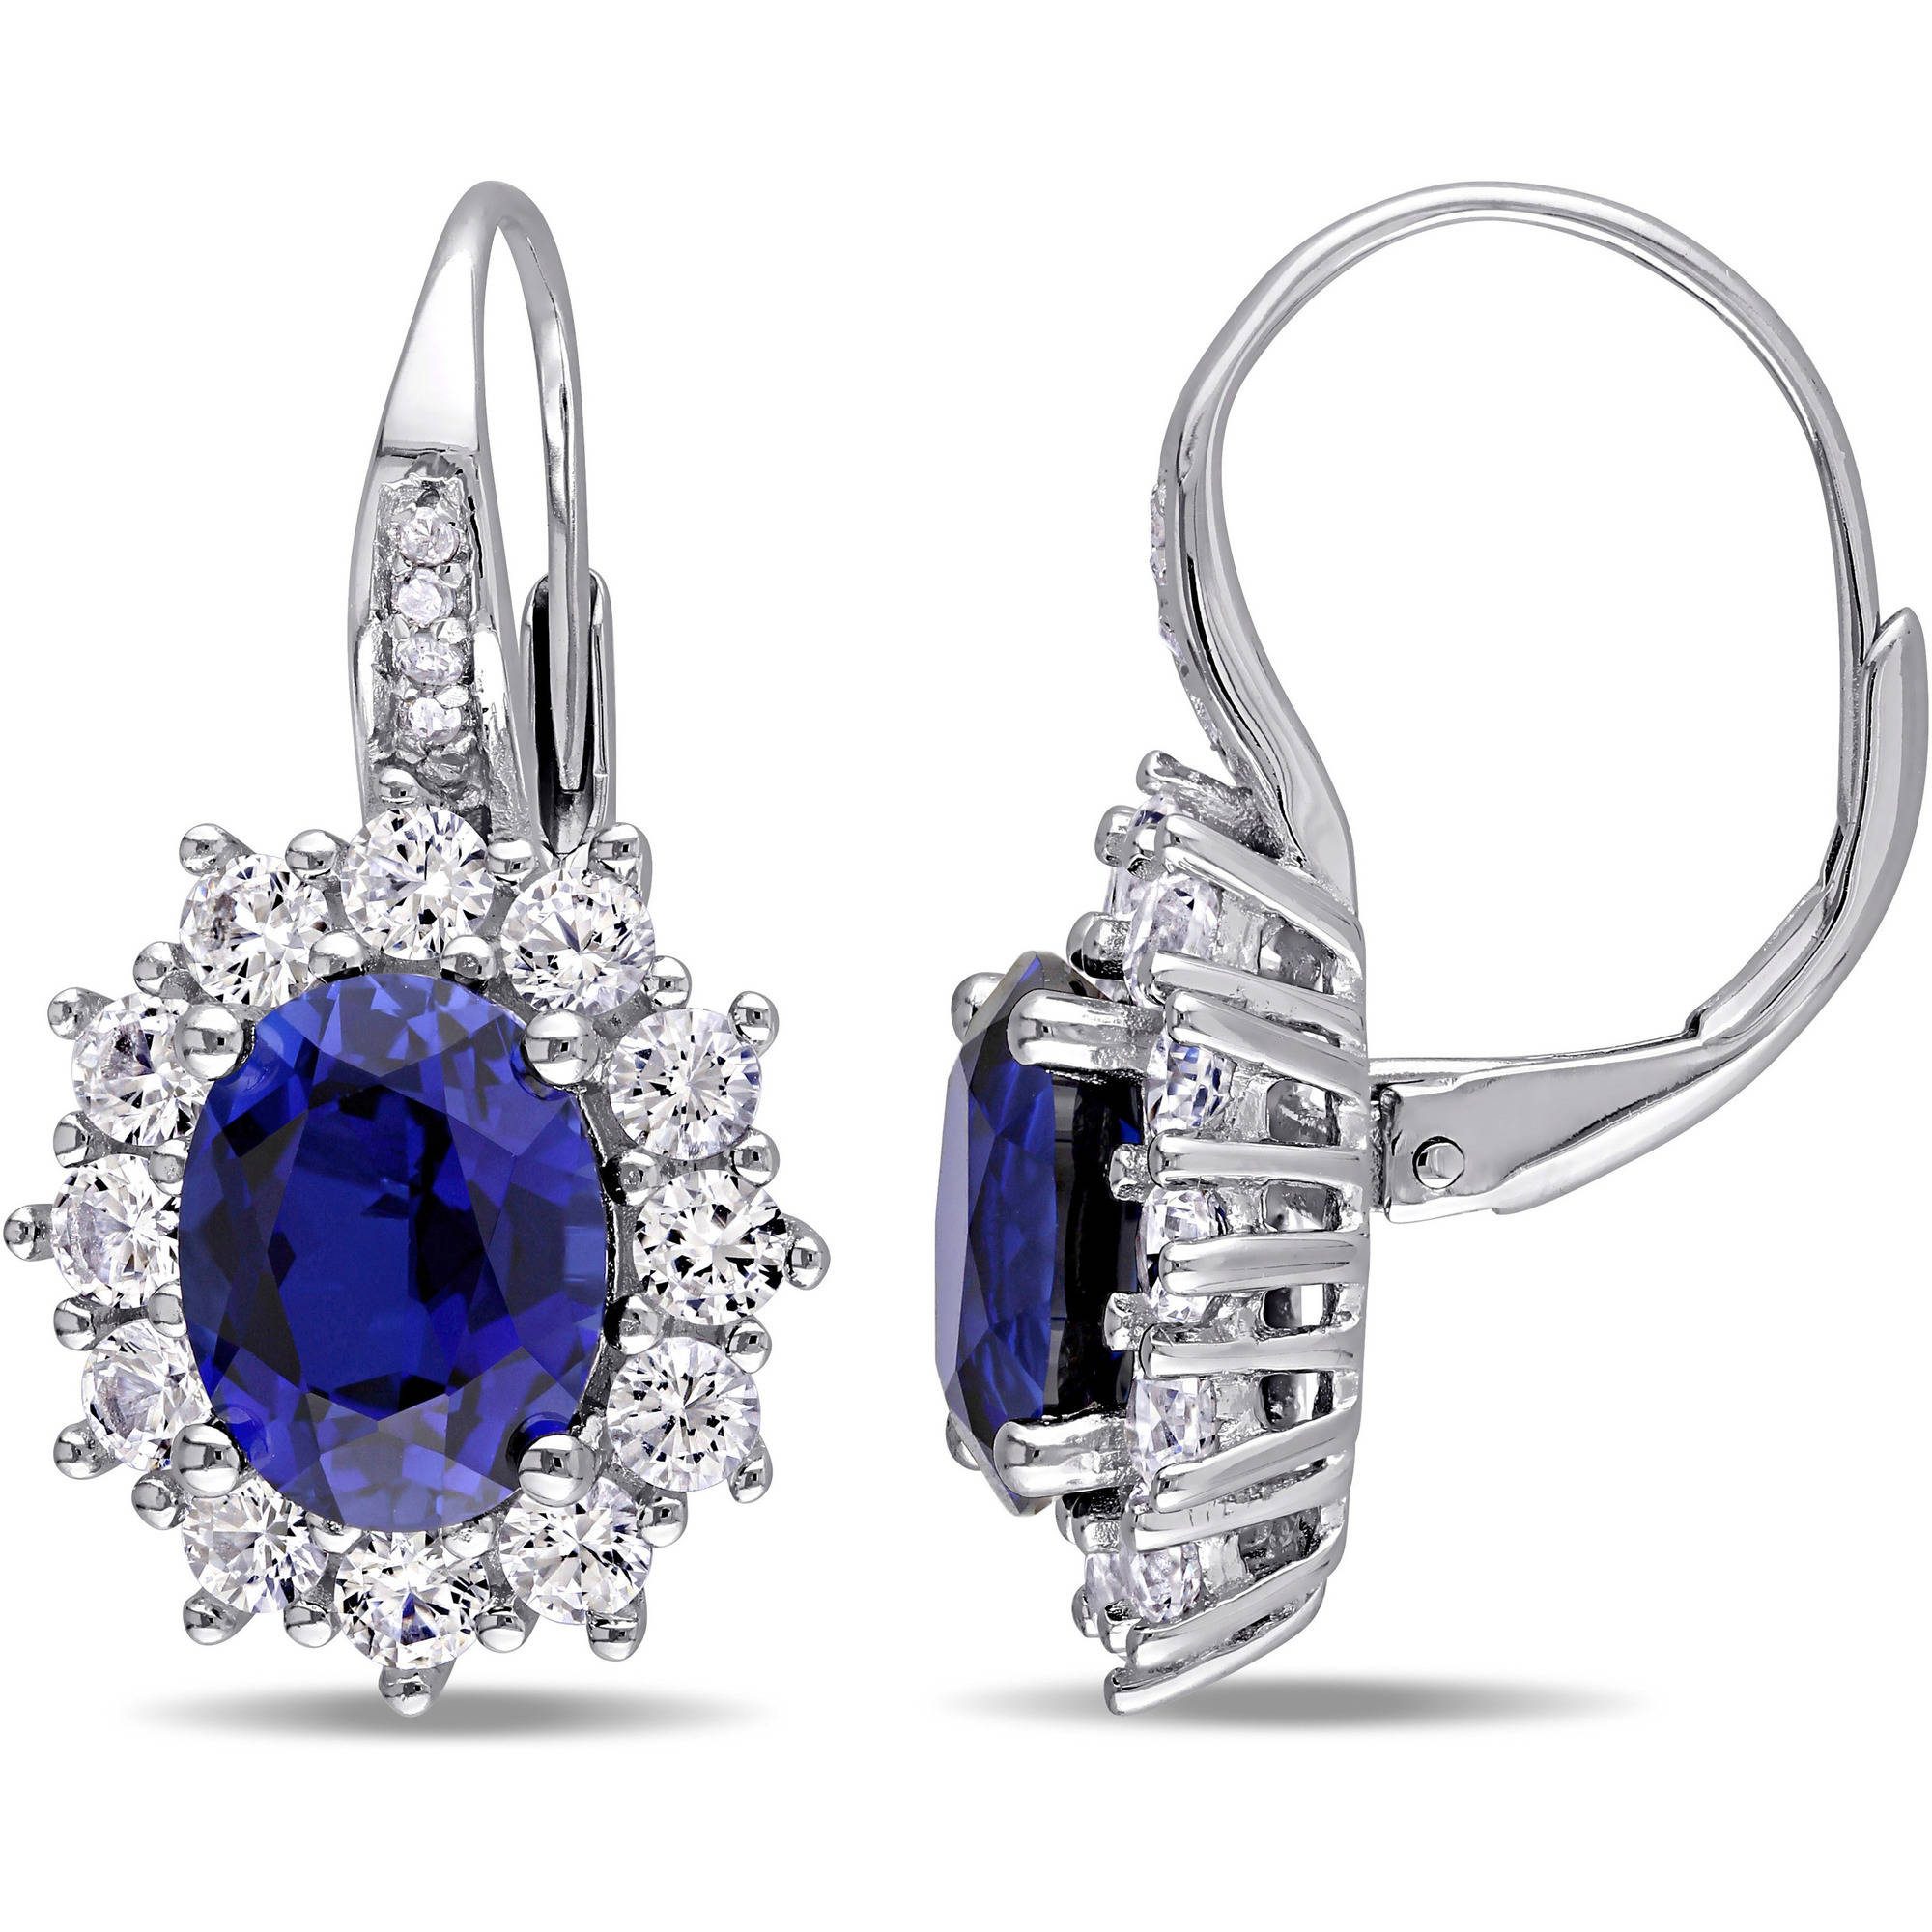 FASHIONS FOREVER® 925 Sterling Silver Royal Crystal Drop Leverback Earrings